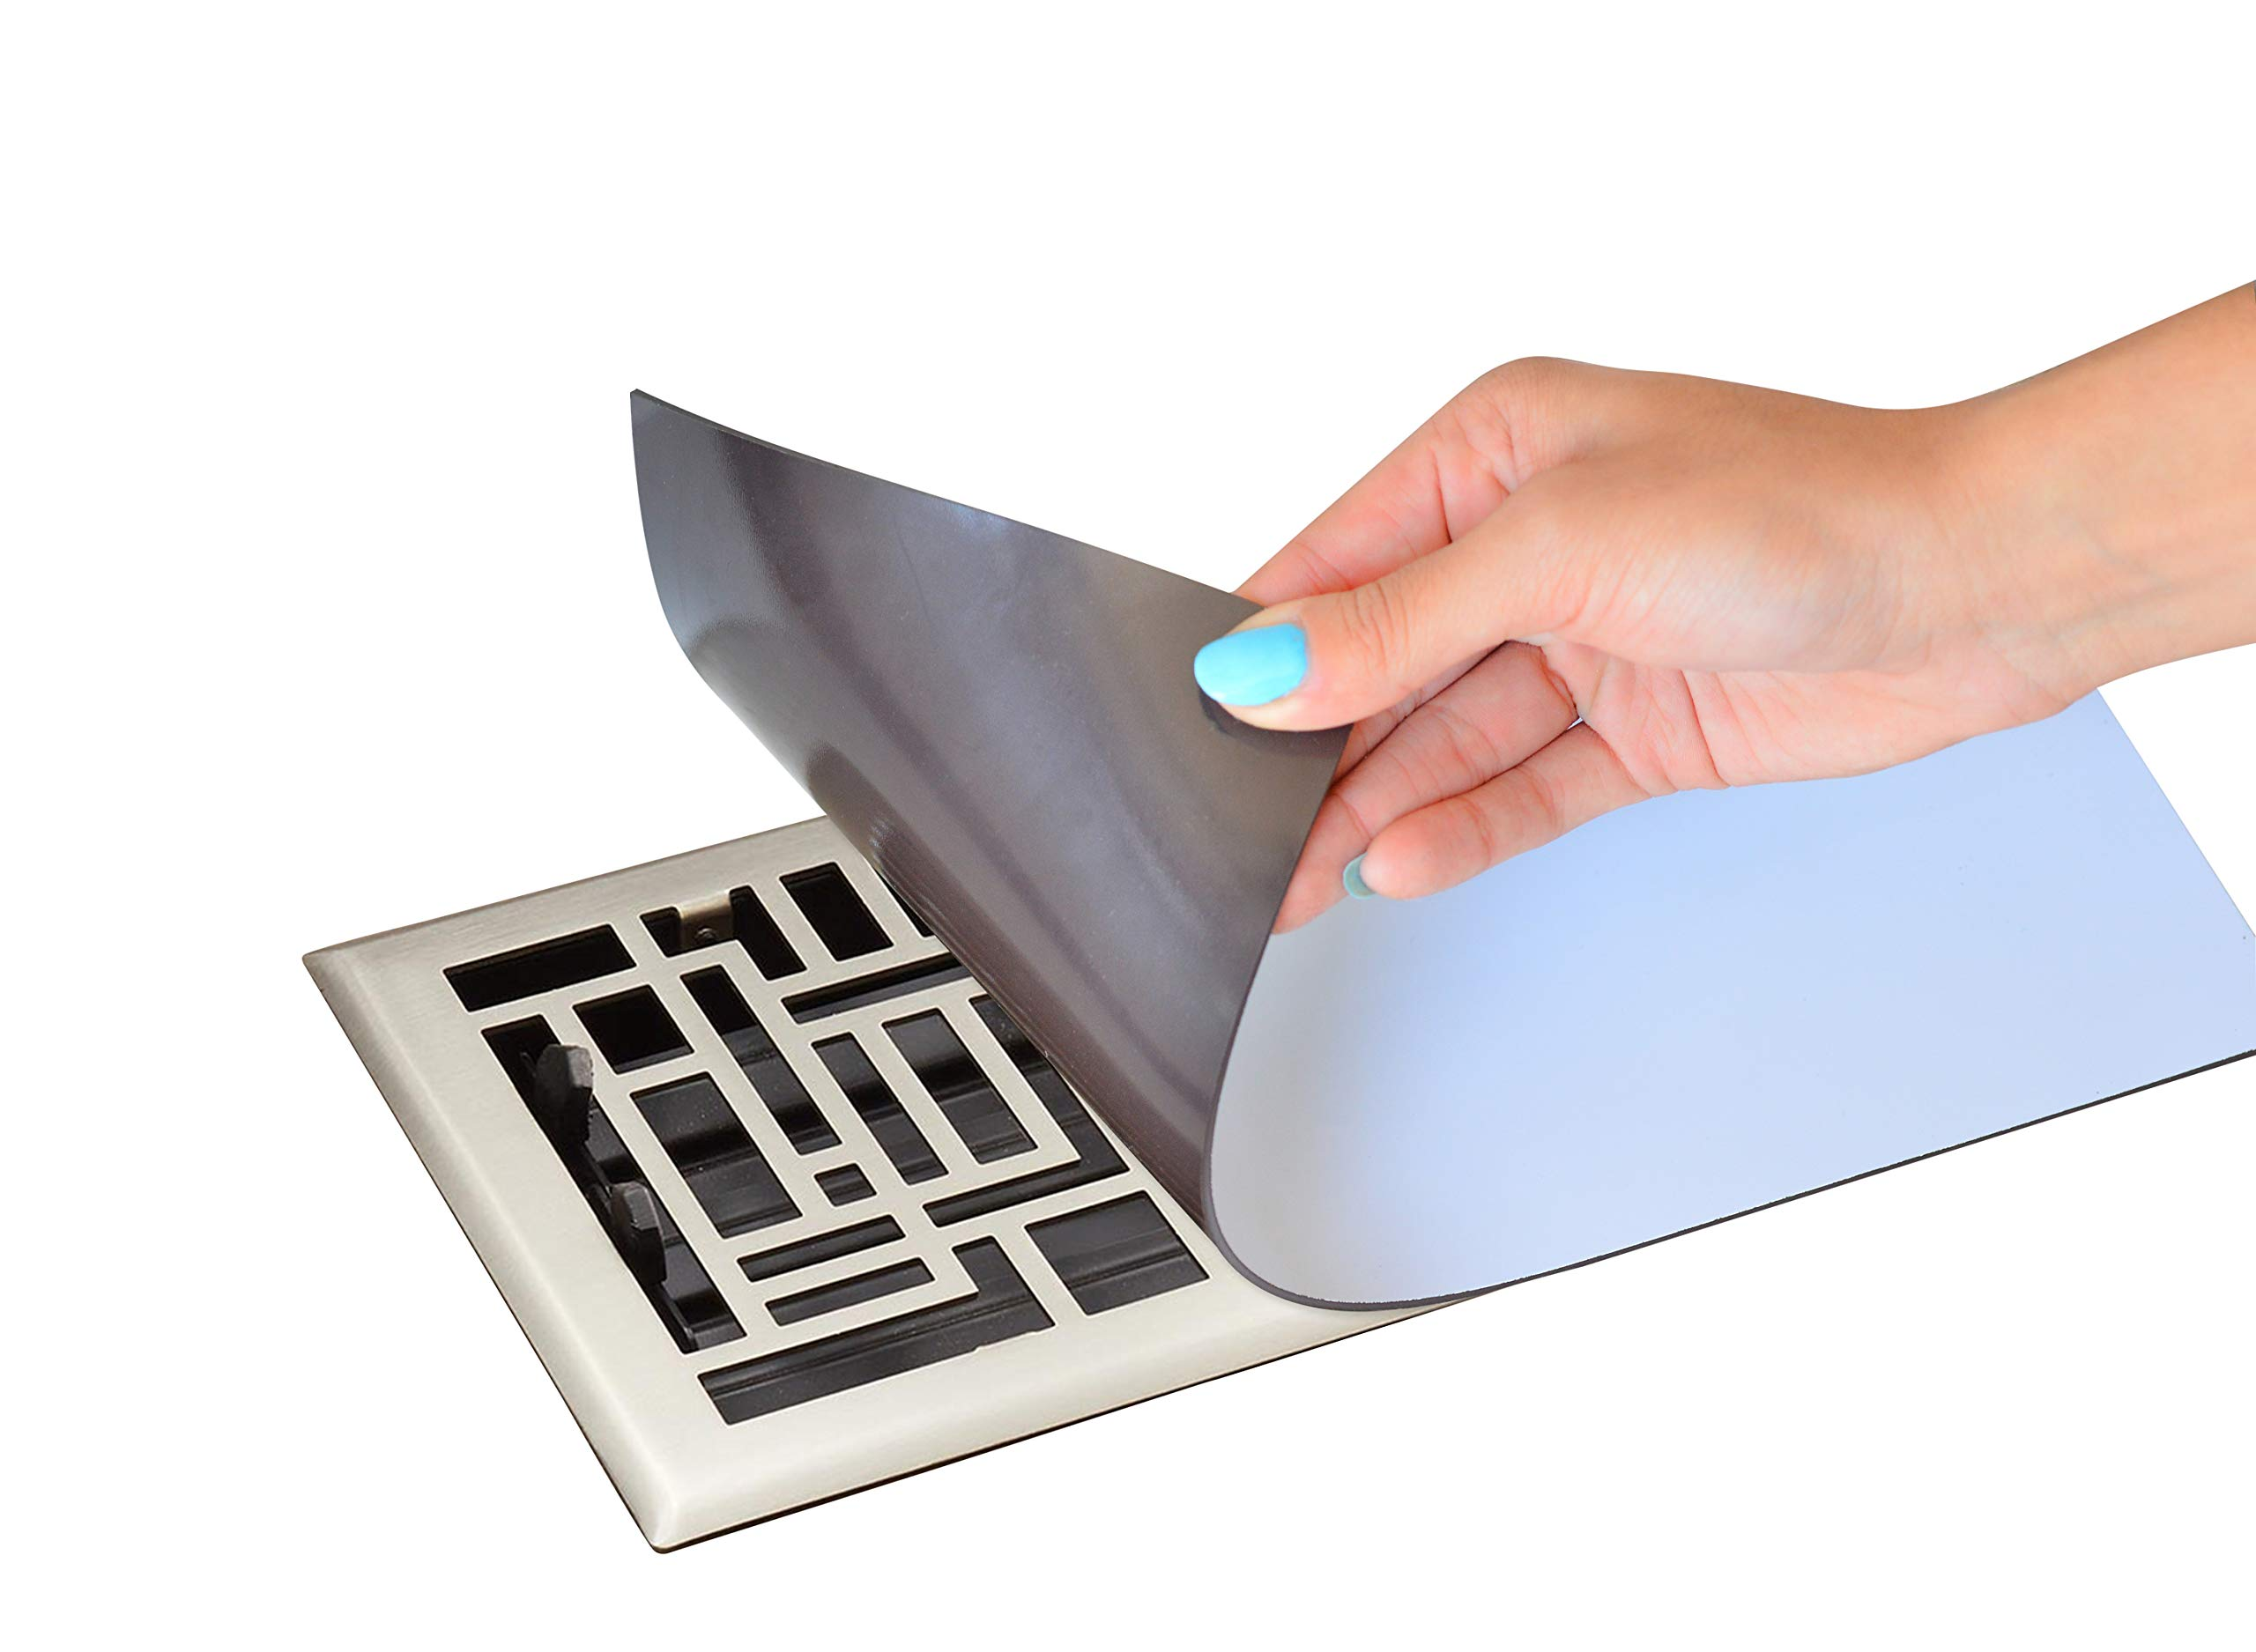 """4X Stronger Than Most Competitors 5.5""""x12"""" Ultra Magnetic Vent Covers (3-Pack) Will Stick to Any Floor Or Wall Vent (Not Recommended for Ceiling Or Aluminum Vents)"""